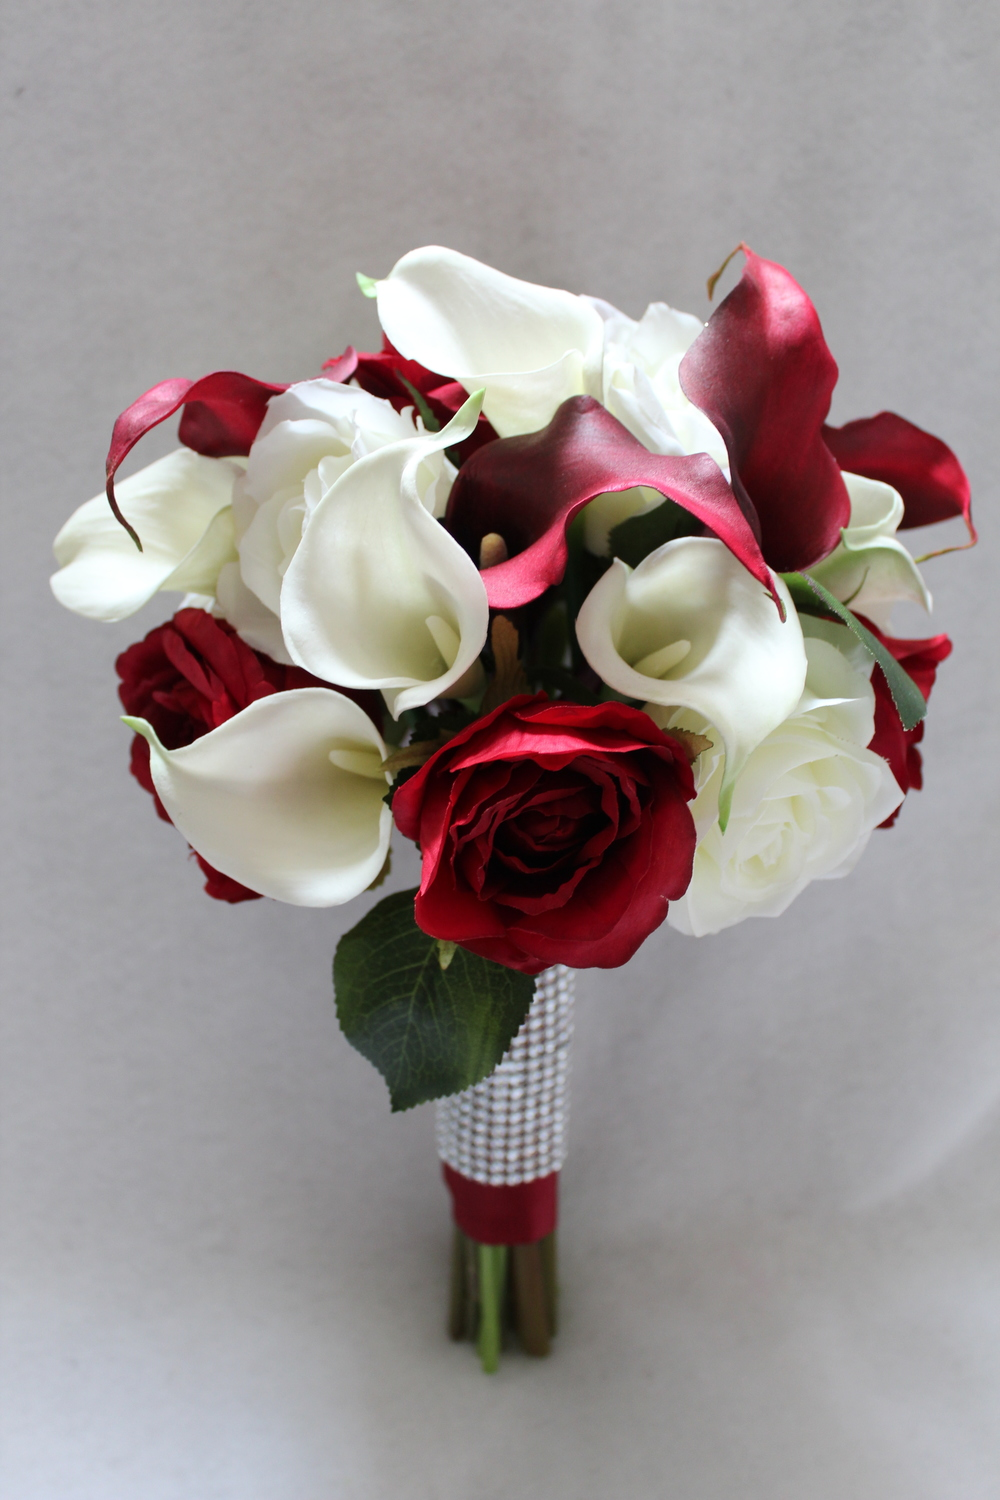 Red and white flowers silk wedding flowers and bouquets online minneapolis silk florist red and white flower bridal izmirmasajfo